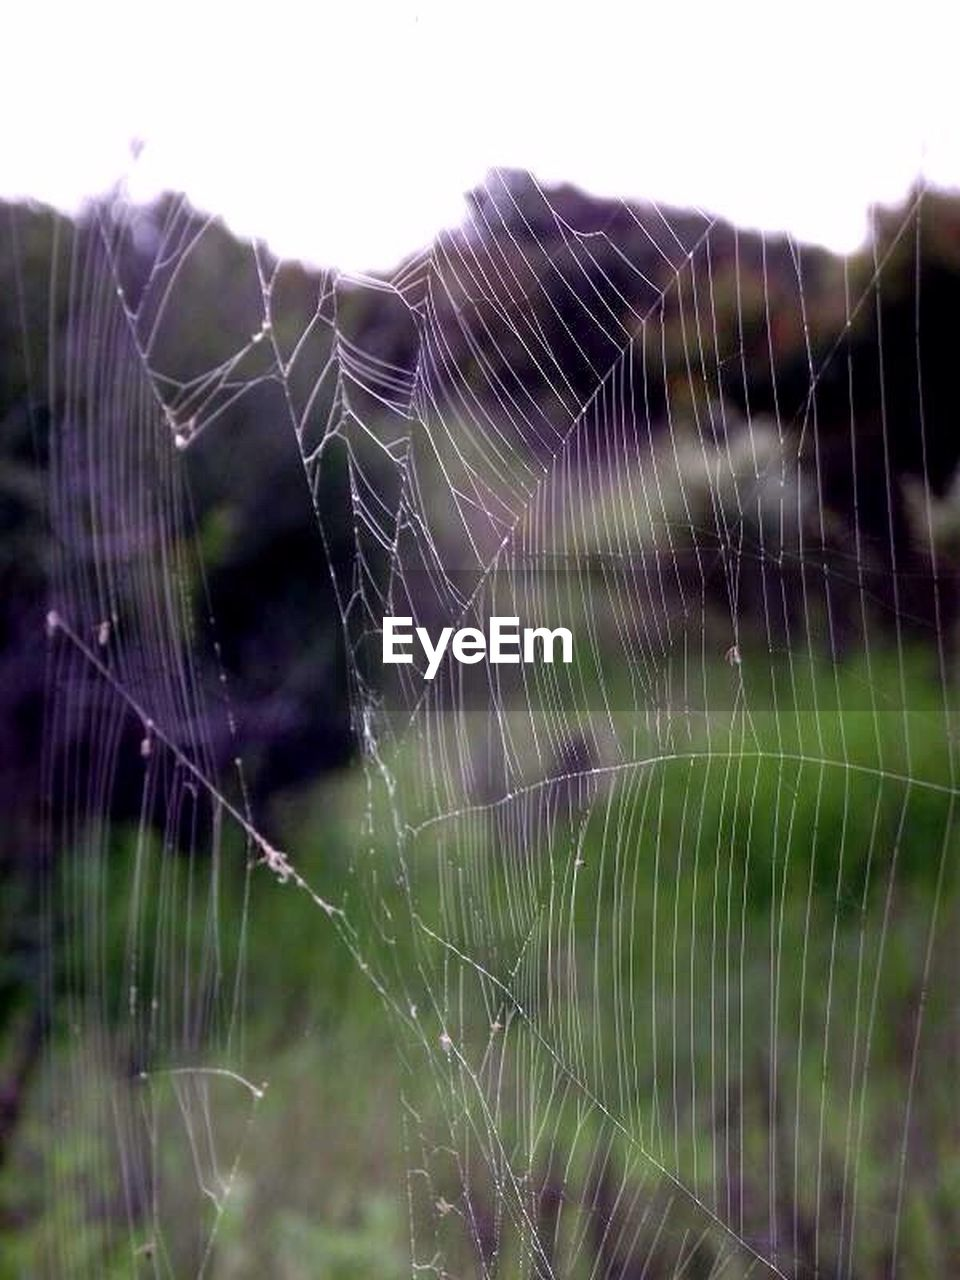 spider web, nature, web, fragility, close-up, outdoors, spider, focus on foreground, weaving, no people, day, beauty in nature, silk, trapped, freshness